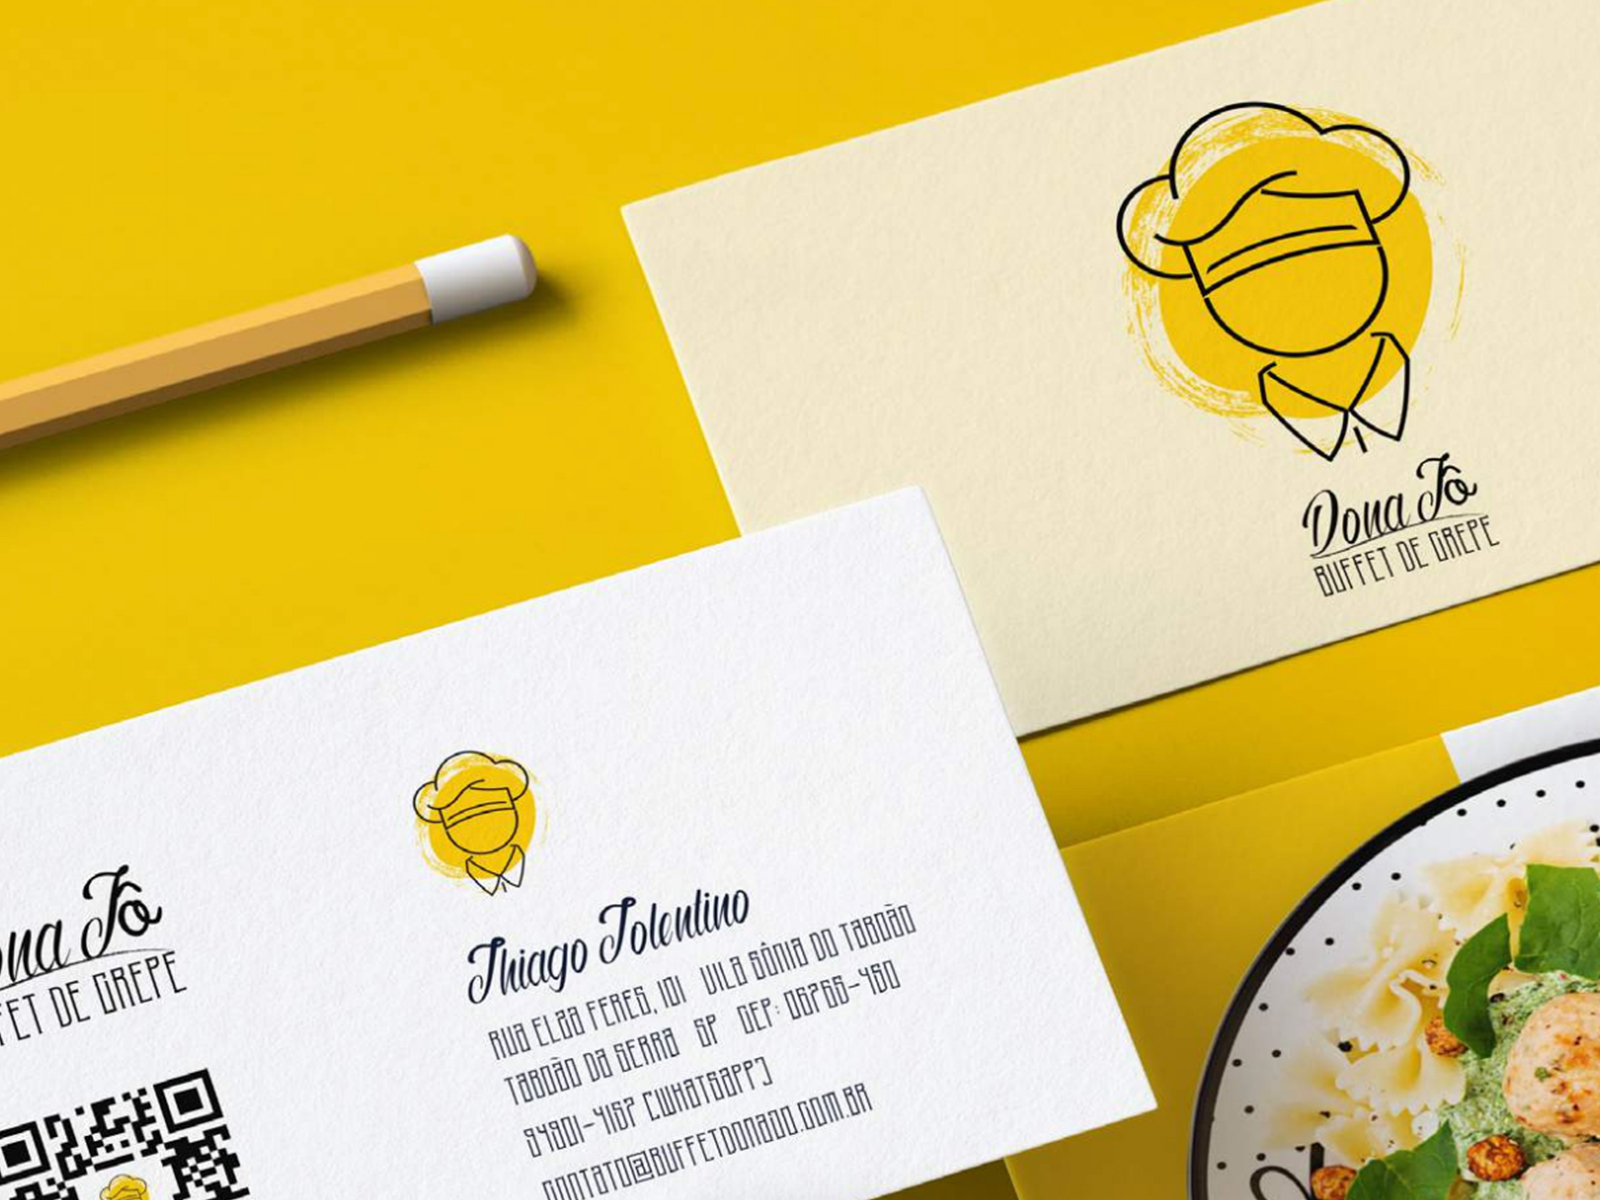 Buffet De Crepe And Pasta Rebrand By Jaketeme Zapelloni On